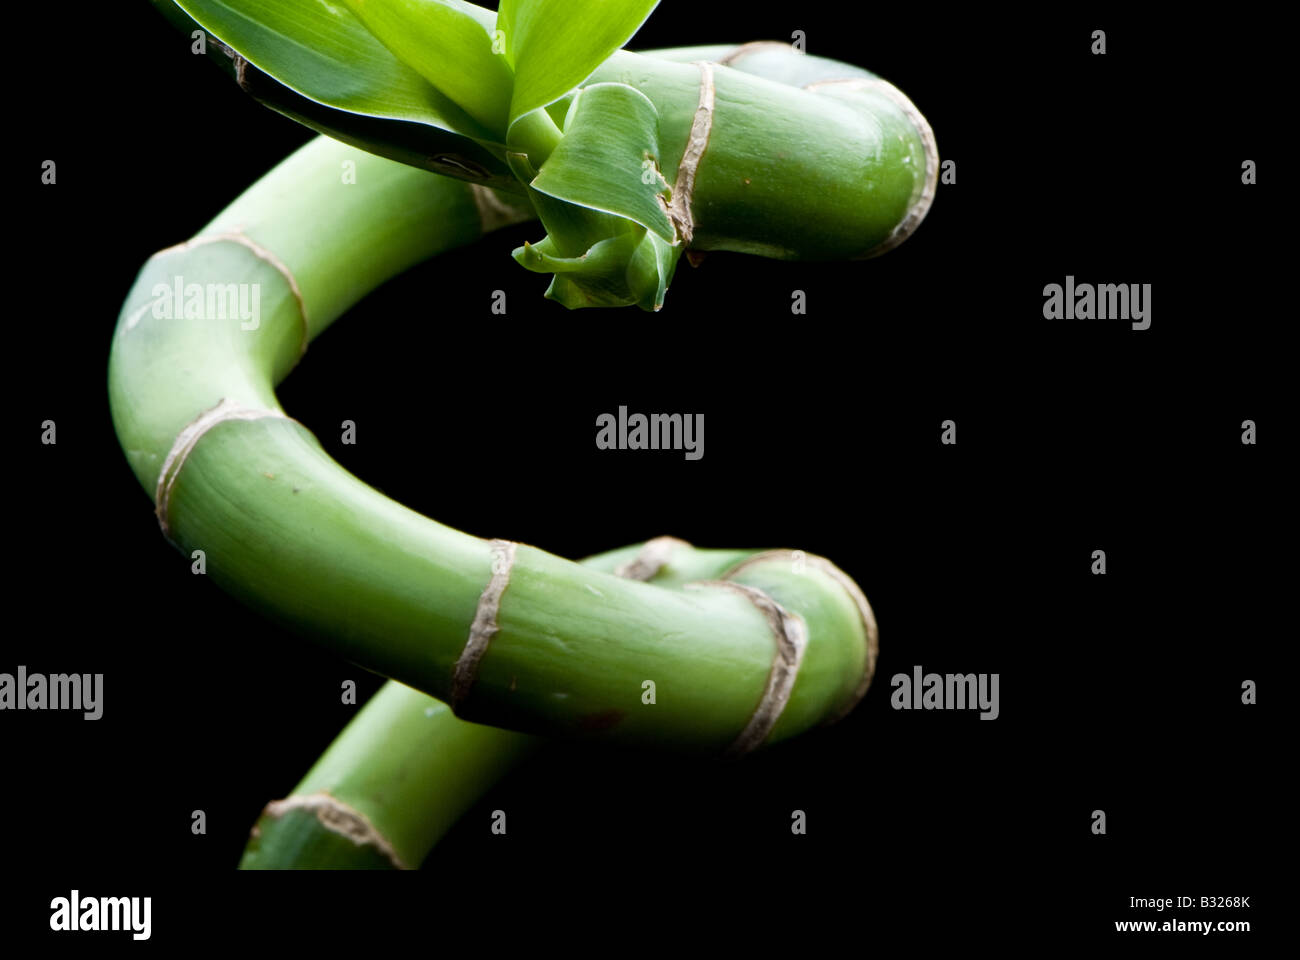 A curved shoot of bamboo on a black background - Stock Image